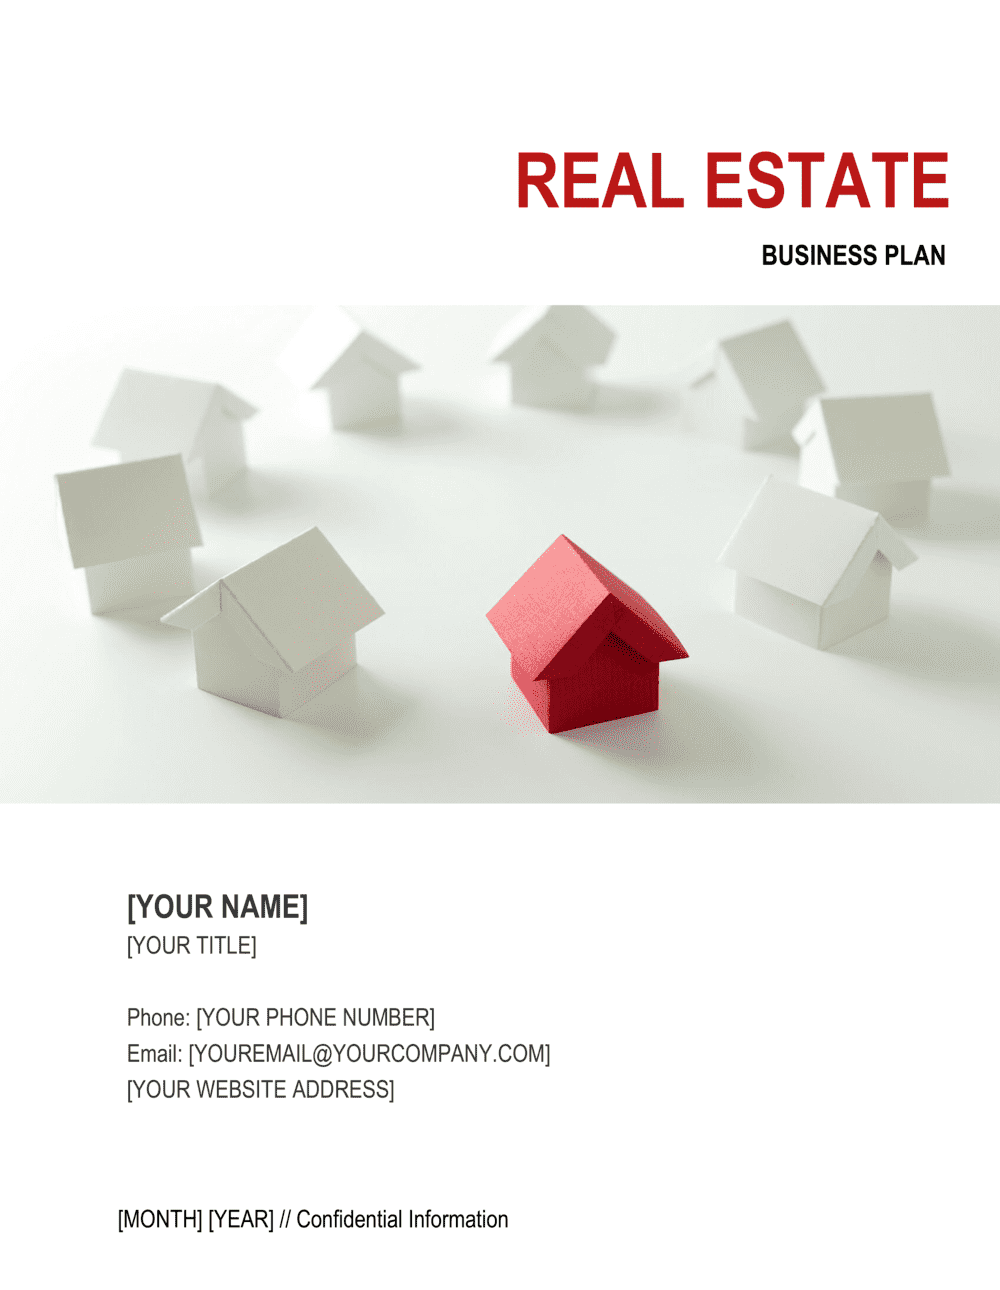 Business-in-a-Box's Real Estate Management Business Plan Template